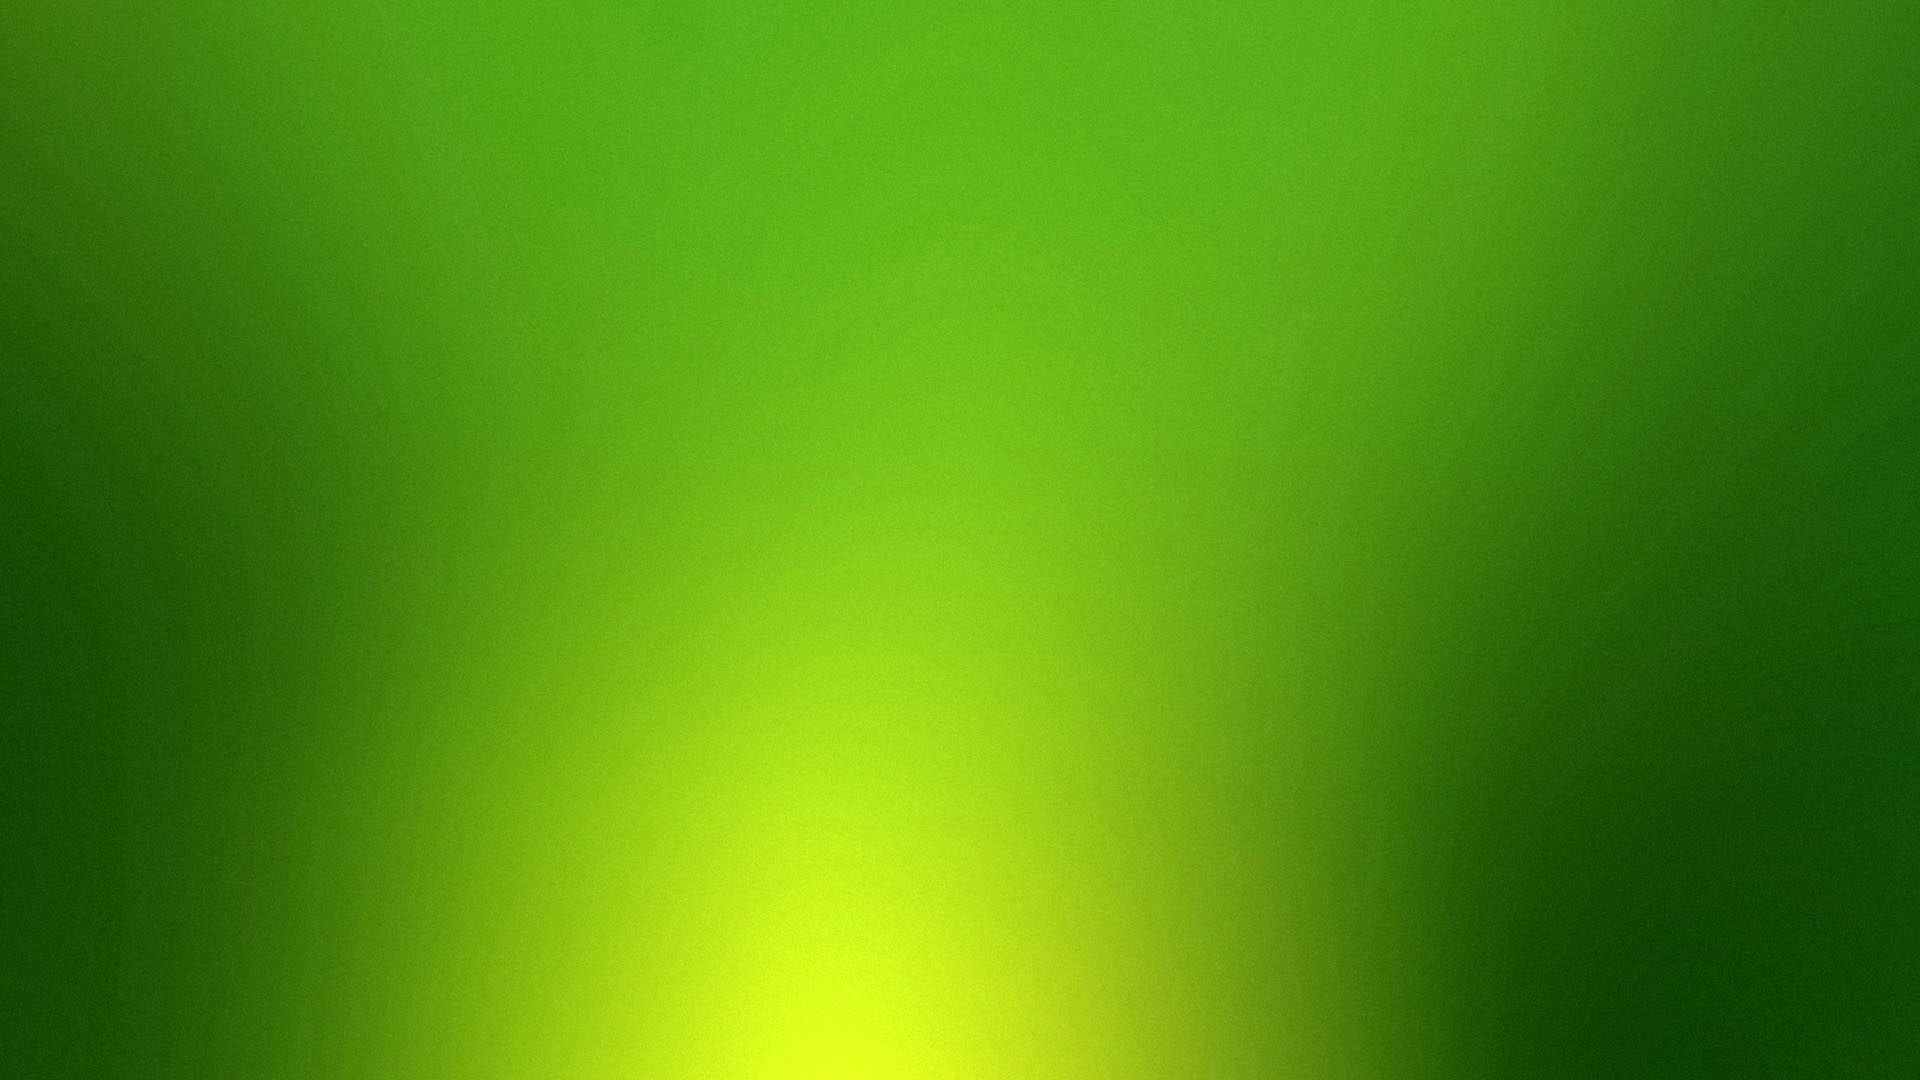 Green Background 06